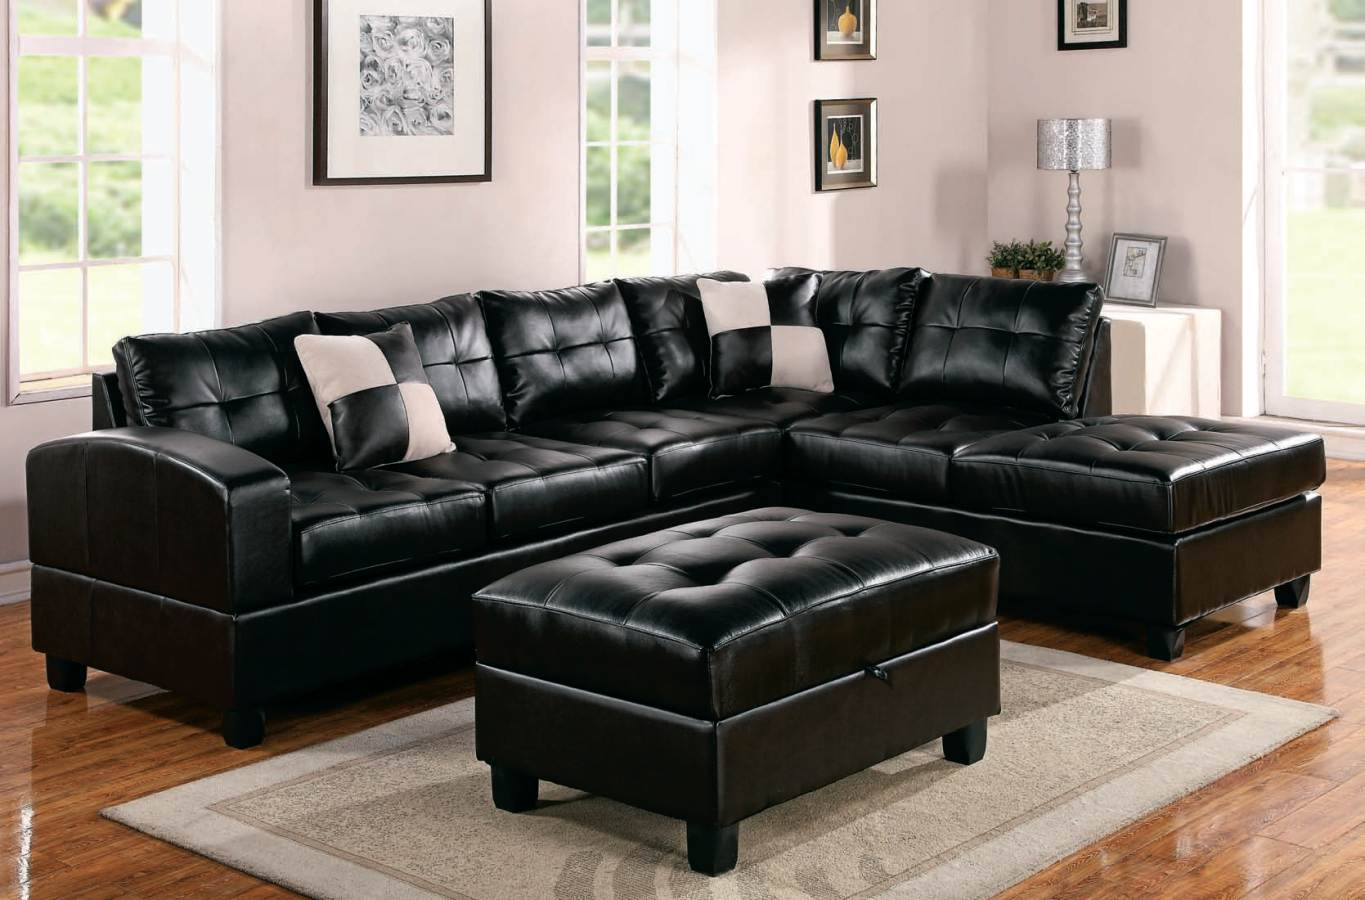 Black furniture set in the Classic styled living room